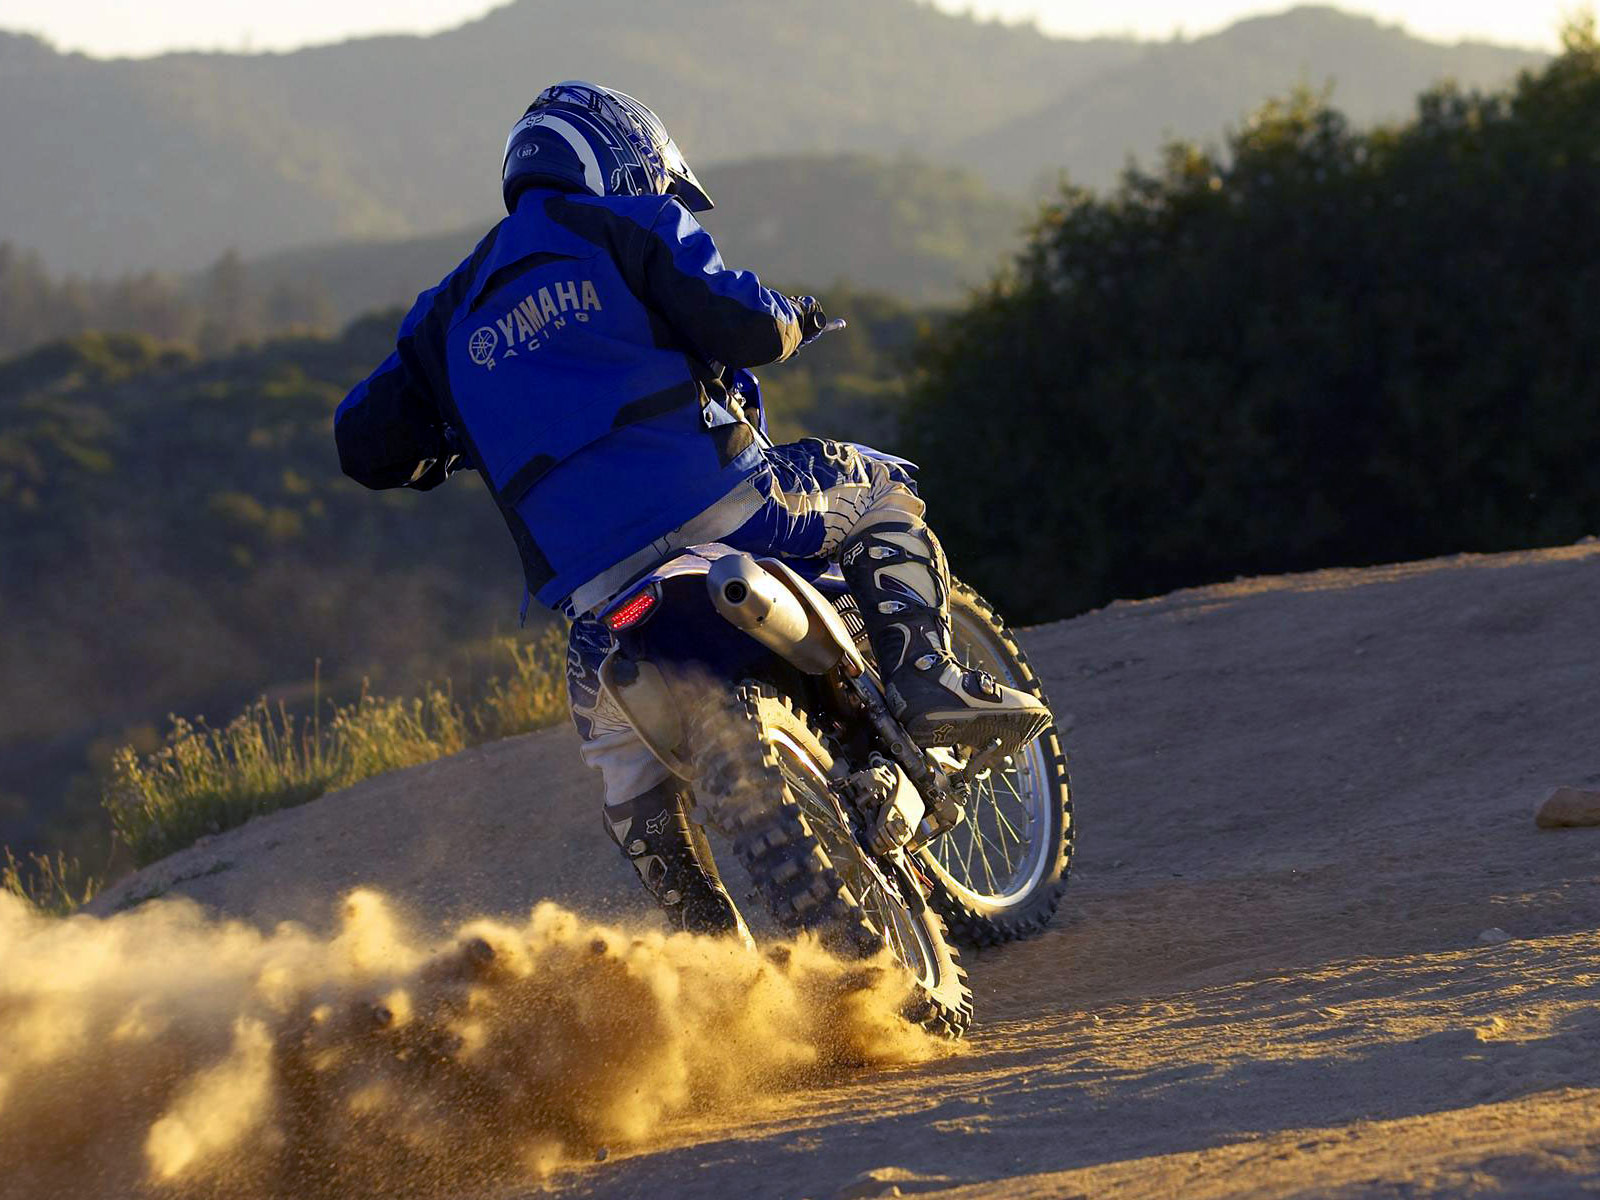 2012 YAMAHA WR450F Wallpapers, Review, Specifications